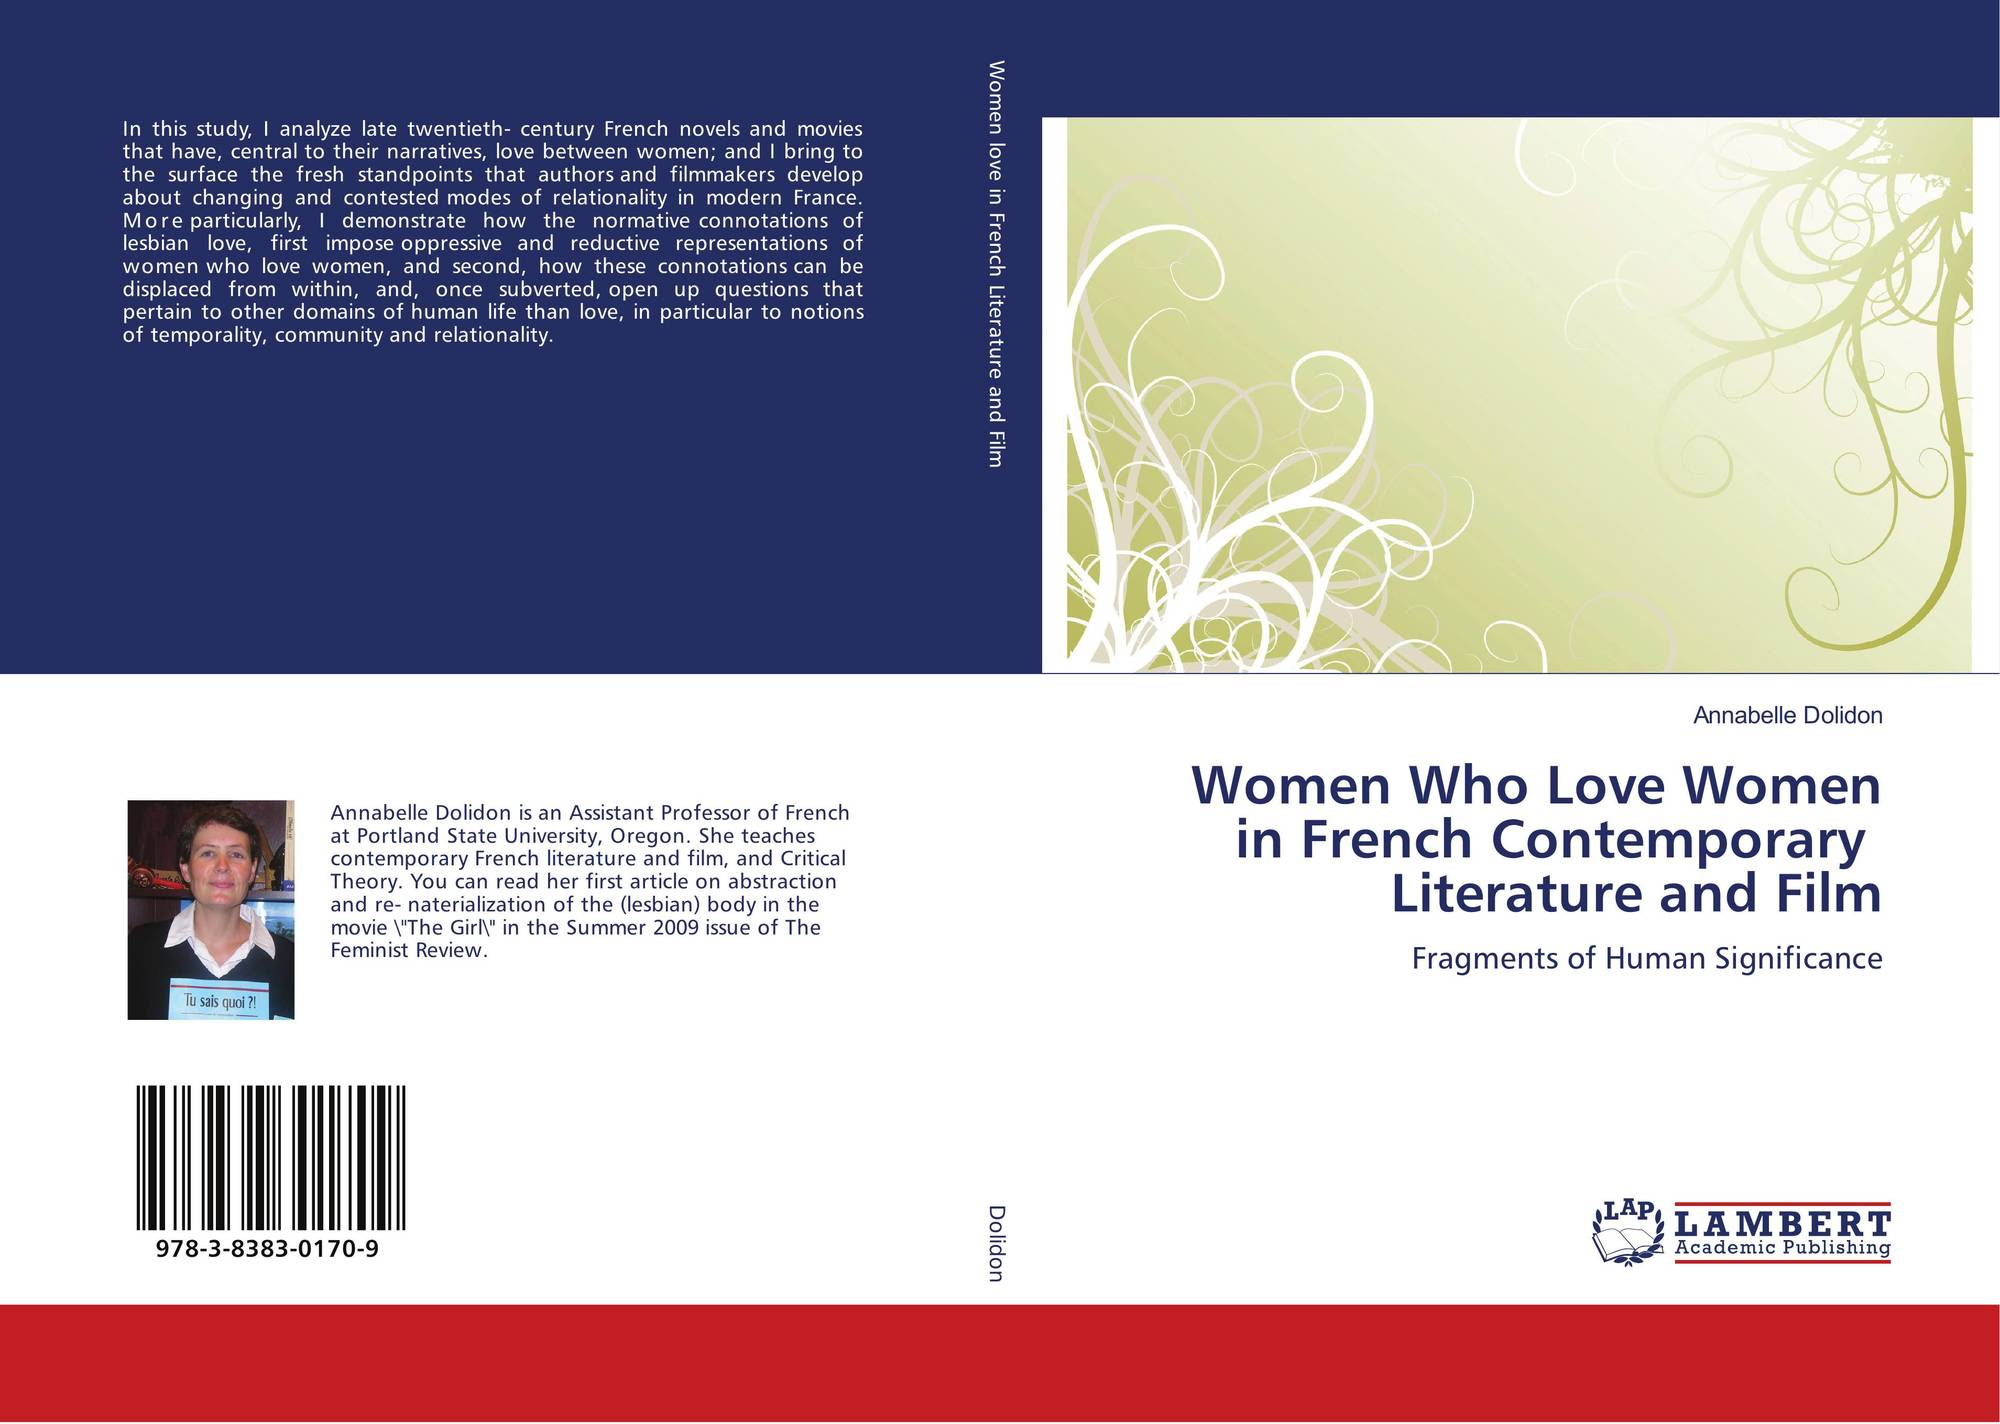 women in literature This course looks closely at literature by and/or about women as it informs their gendered identity historical and chronological discussion of gender role definition and the relationship between that and how women are viewed and view themselves is a key component of this course.